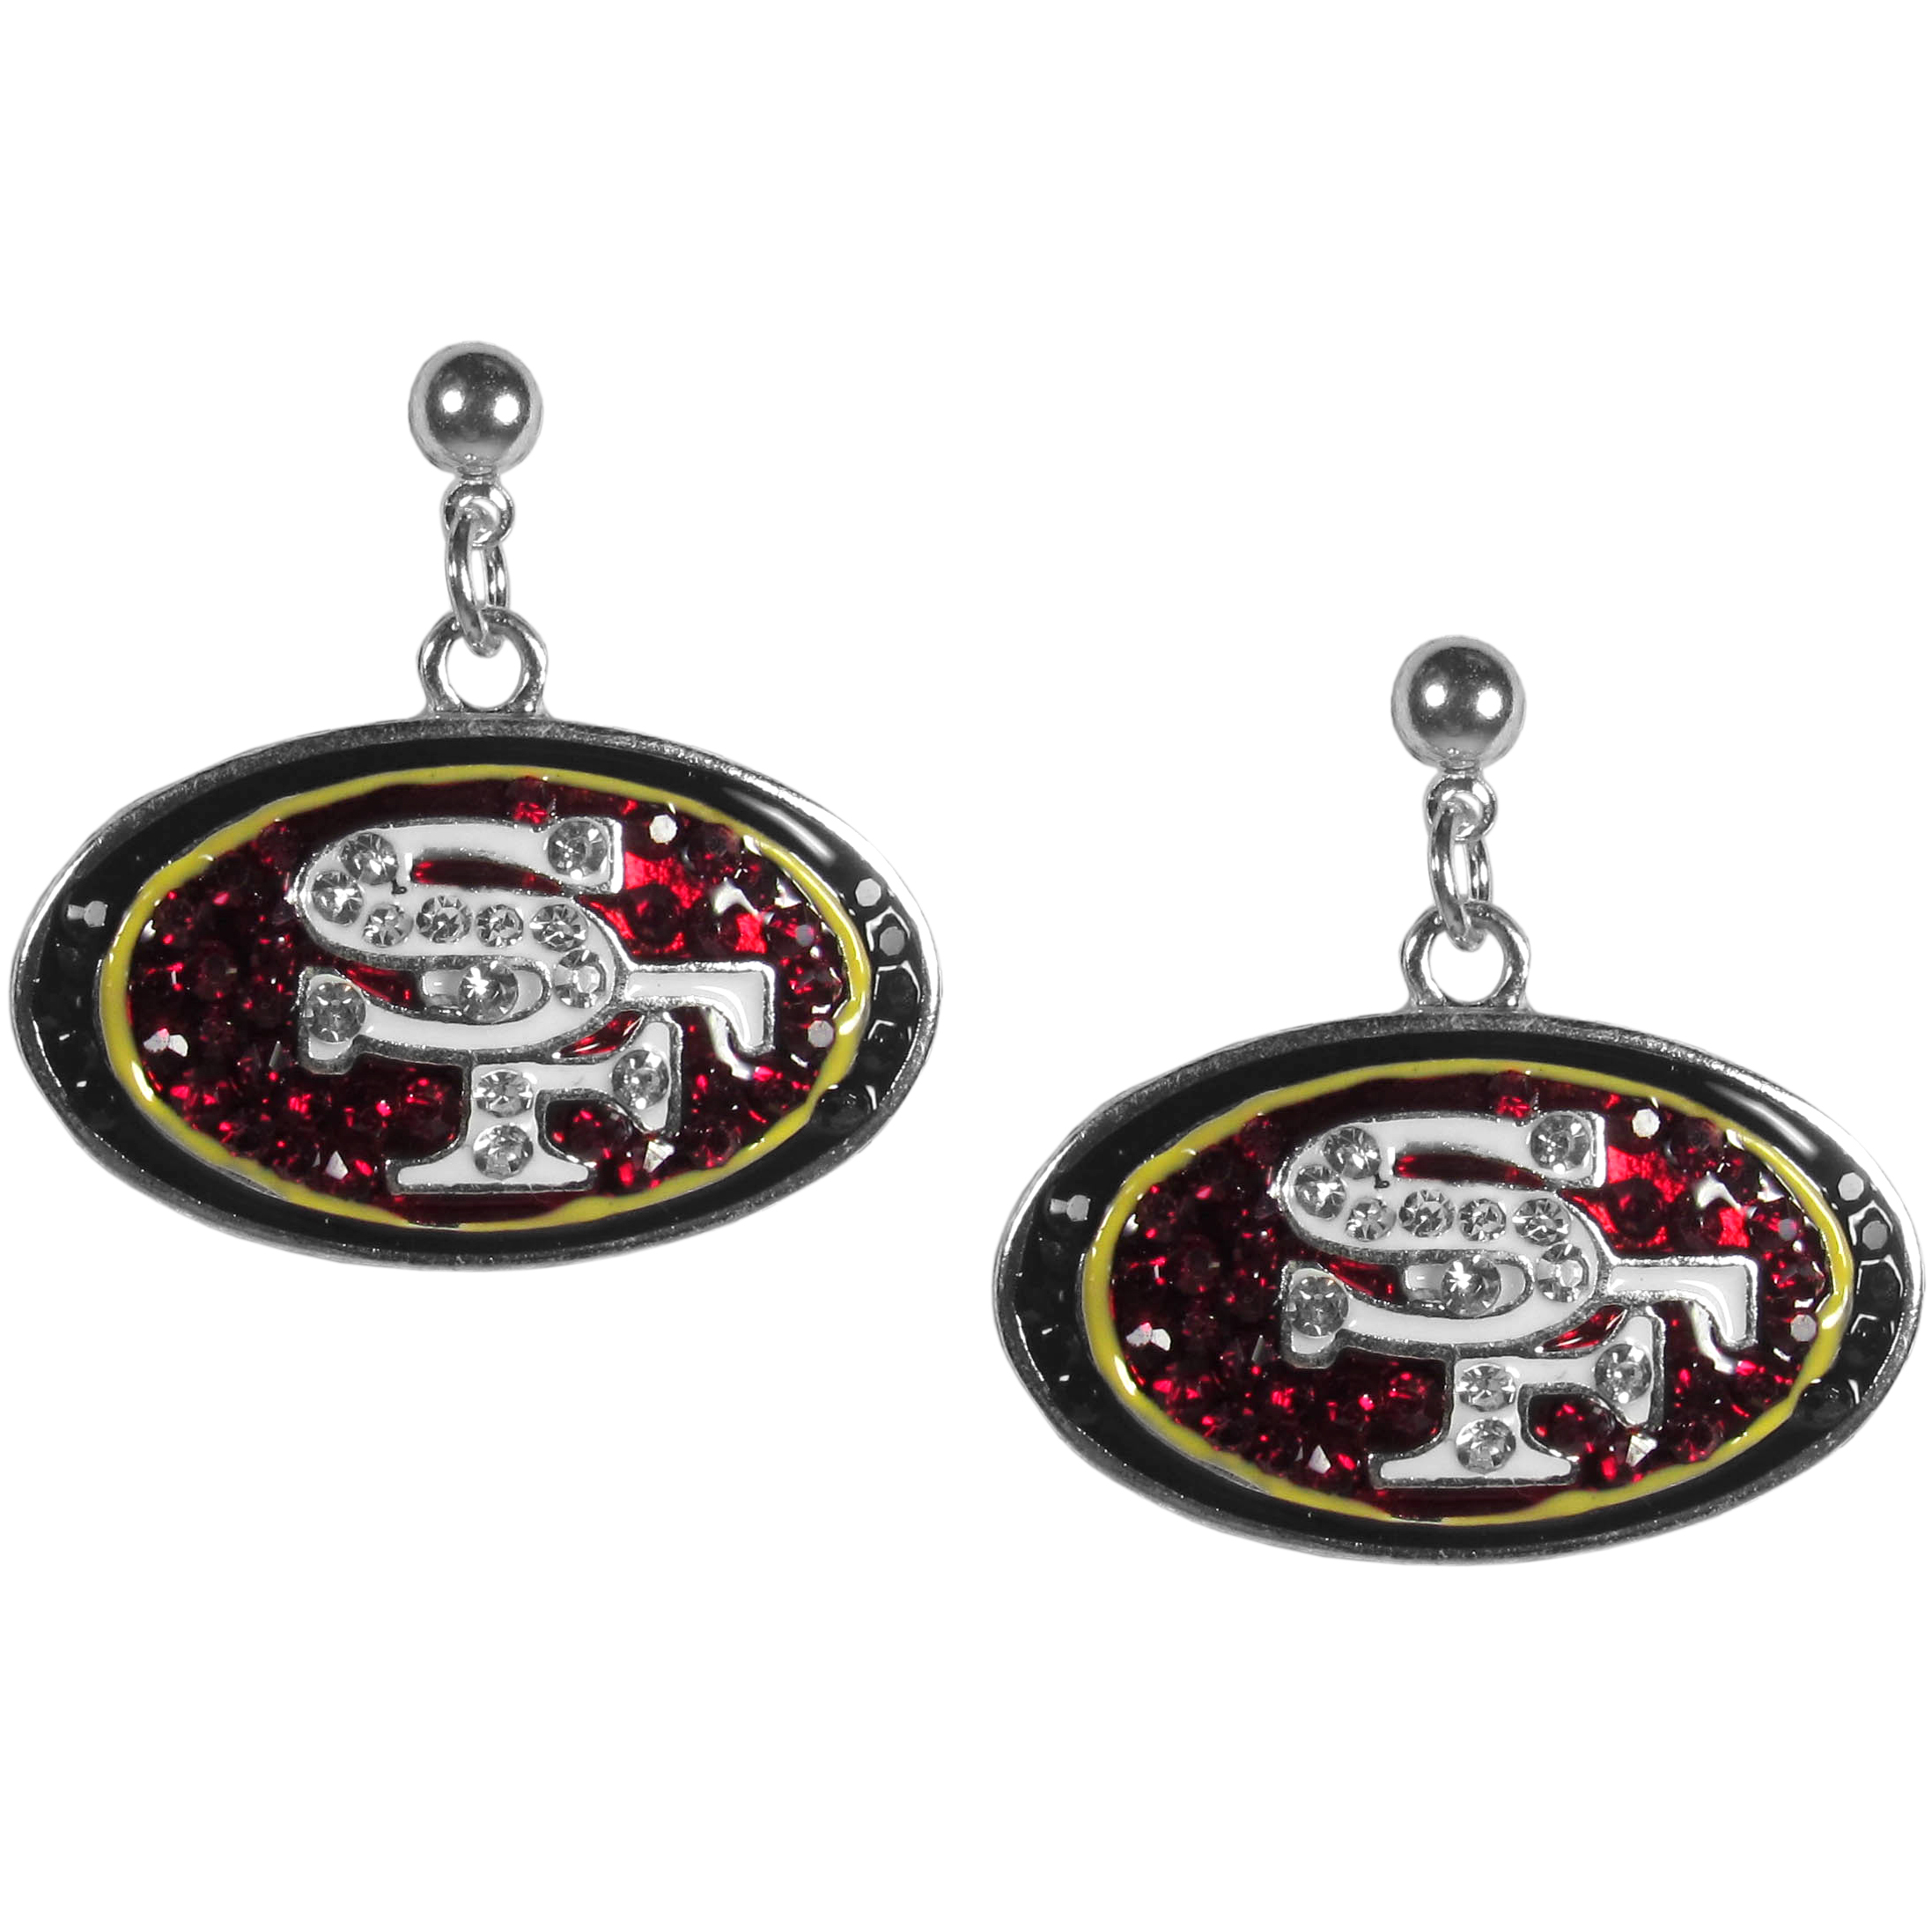 San Francisco 49ers Crystal Stud Earrings - These sporty stud earrings have beautiful crystal enlaided San Francisco 49ers charms that hang from the stud posts so that you have the best of both the dangle earring style with the comfort of the secure stud posts. The trendy charms are silver plated with colorful detail and are absolutely covered in team colored charms. The classy earrings feature hypo-allergenic posts.